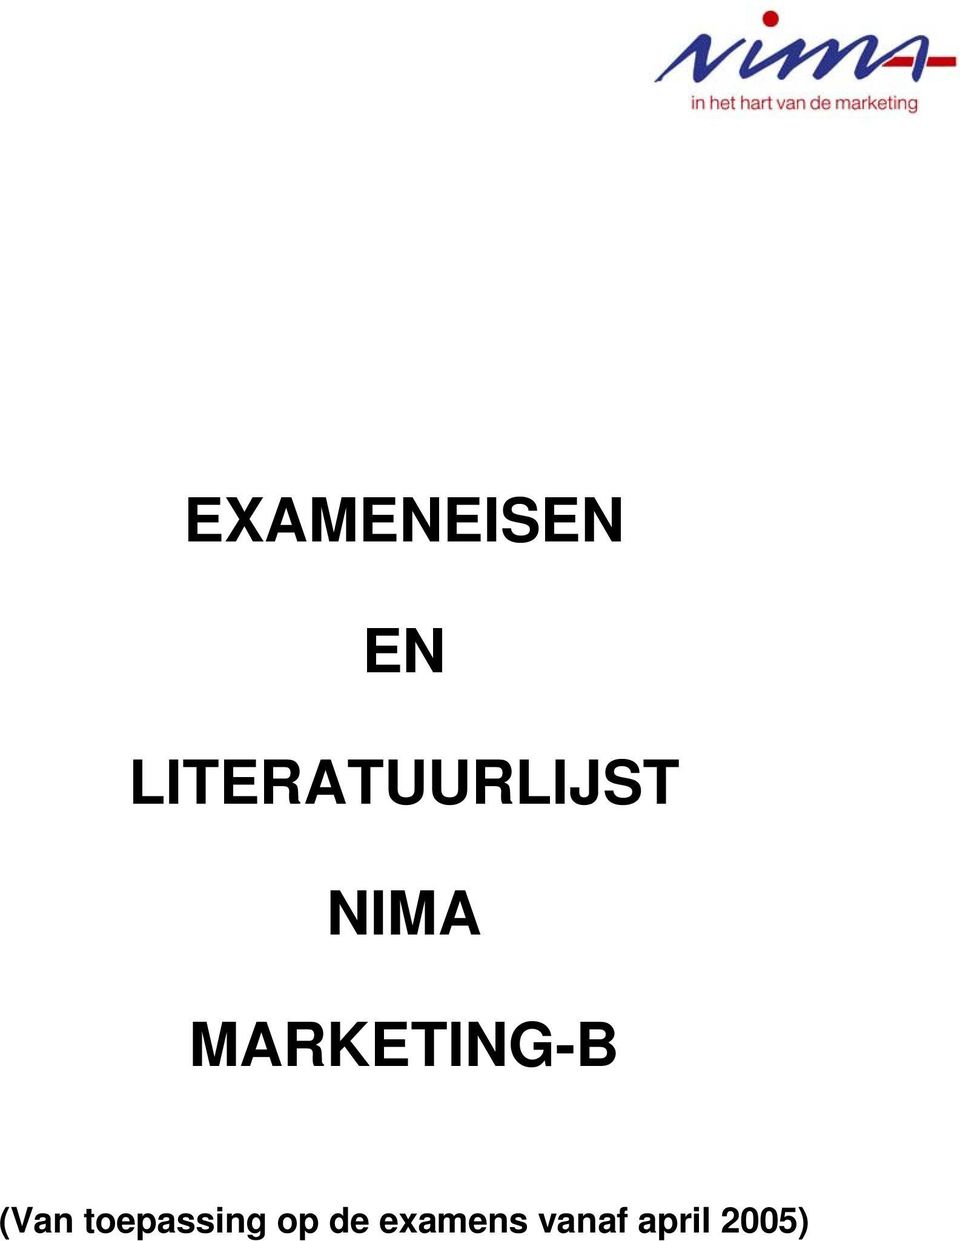 MARKETING-B (Van